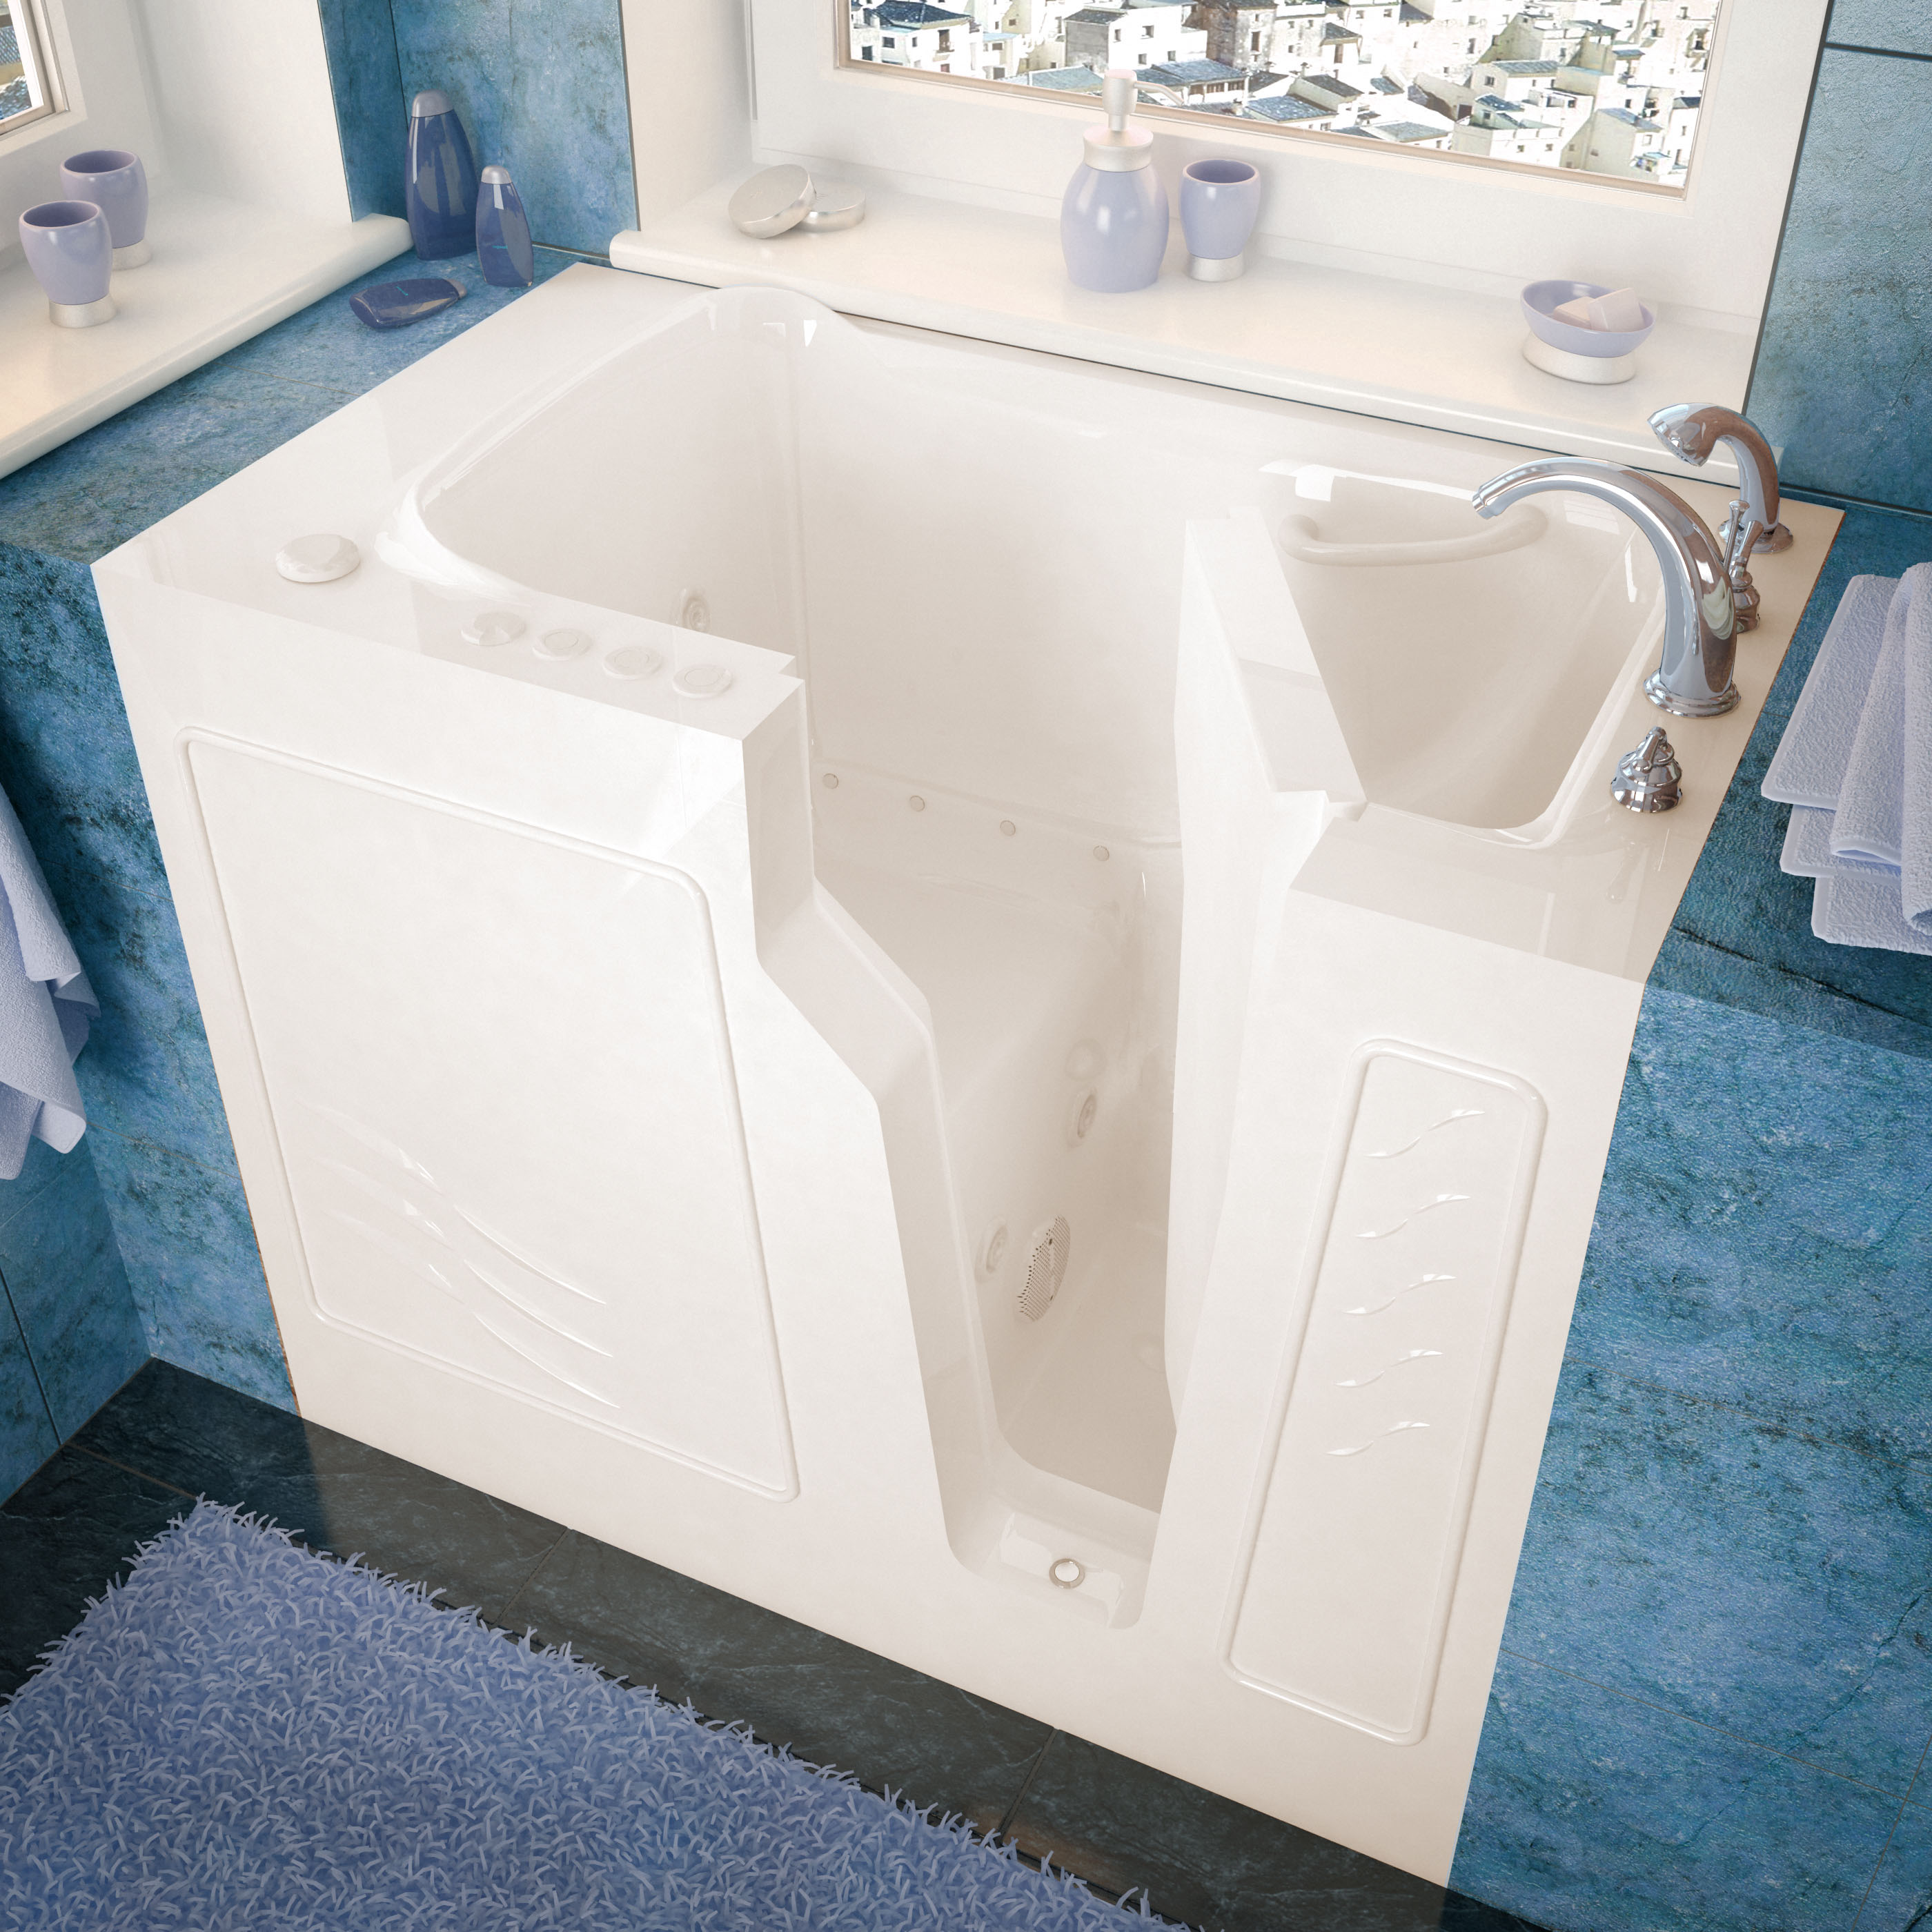 26x46 Right Drain Biscuit Whirlpool & Air Jetted Walk-In Bathtub